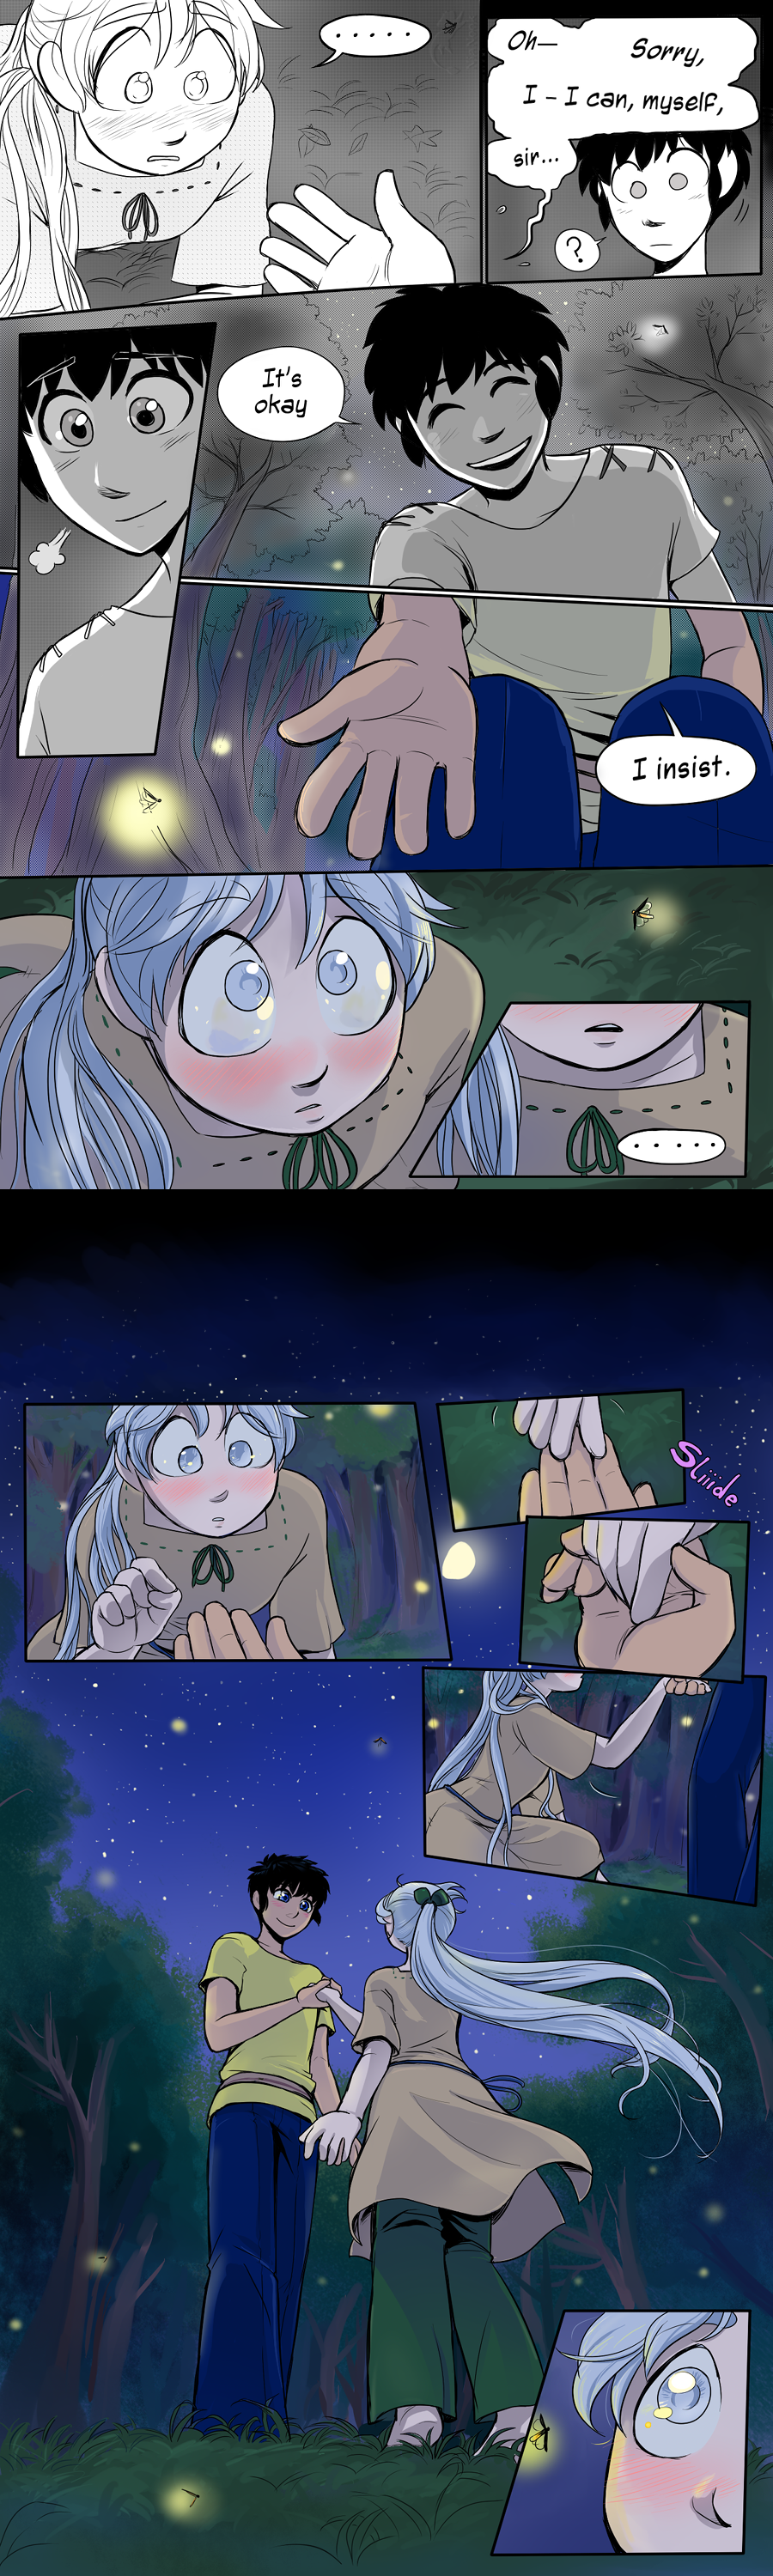 Page 15 & 16 (Book 4)